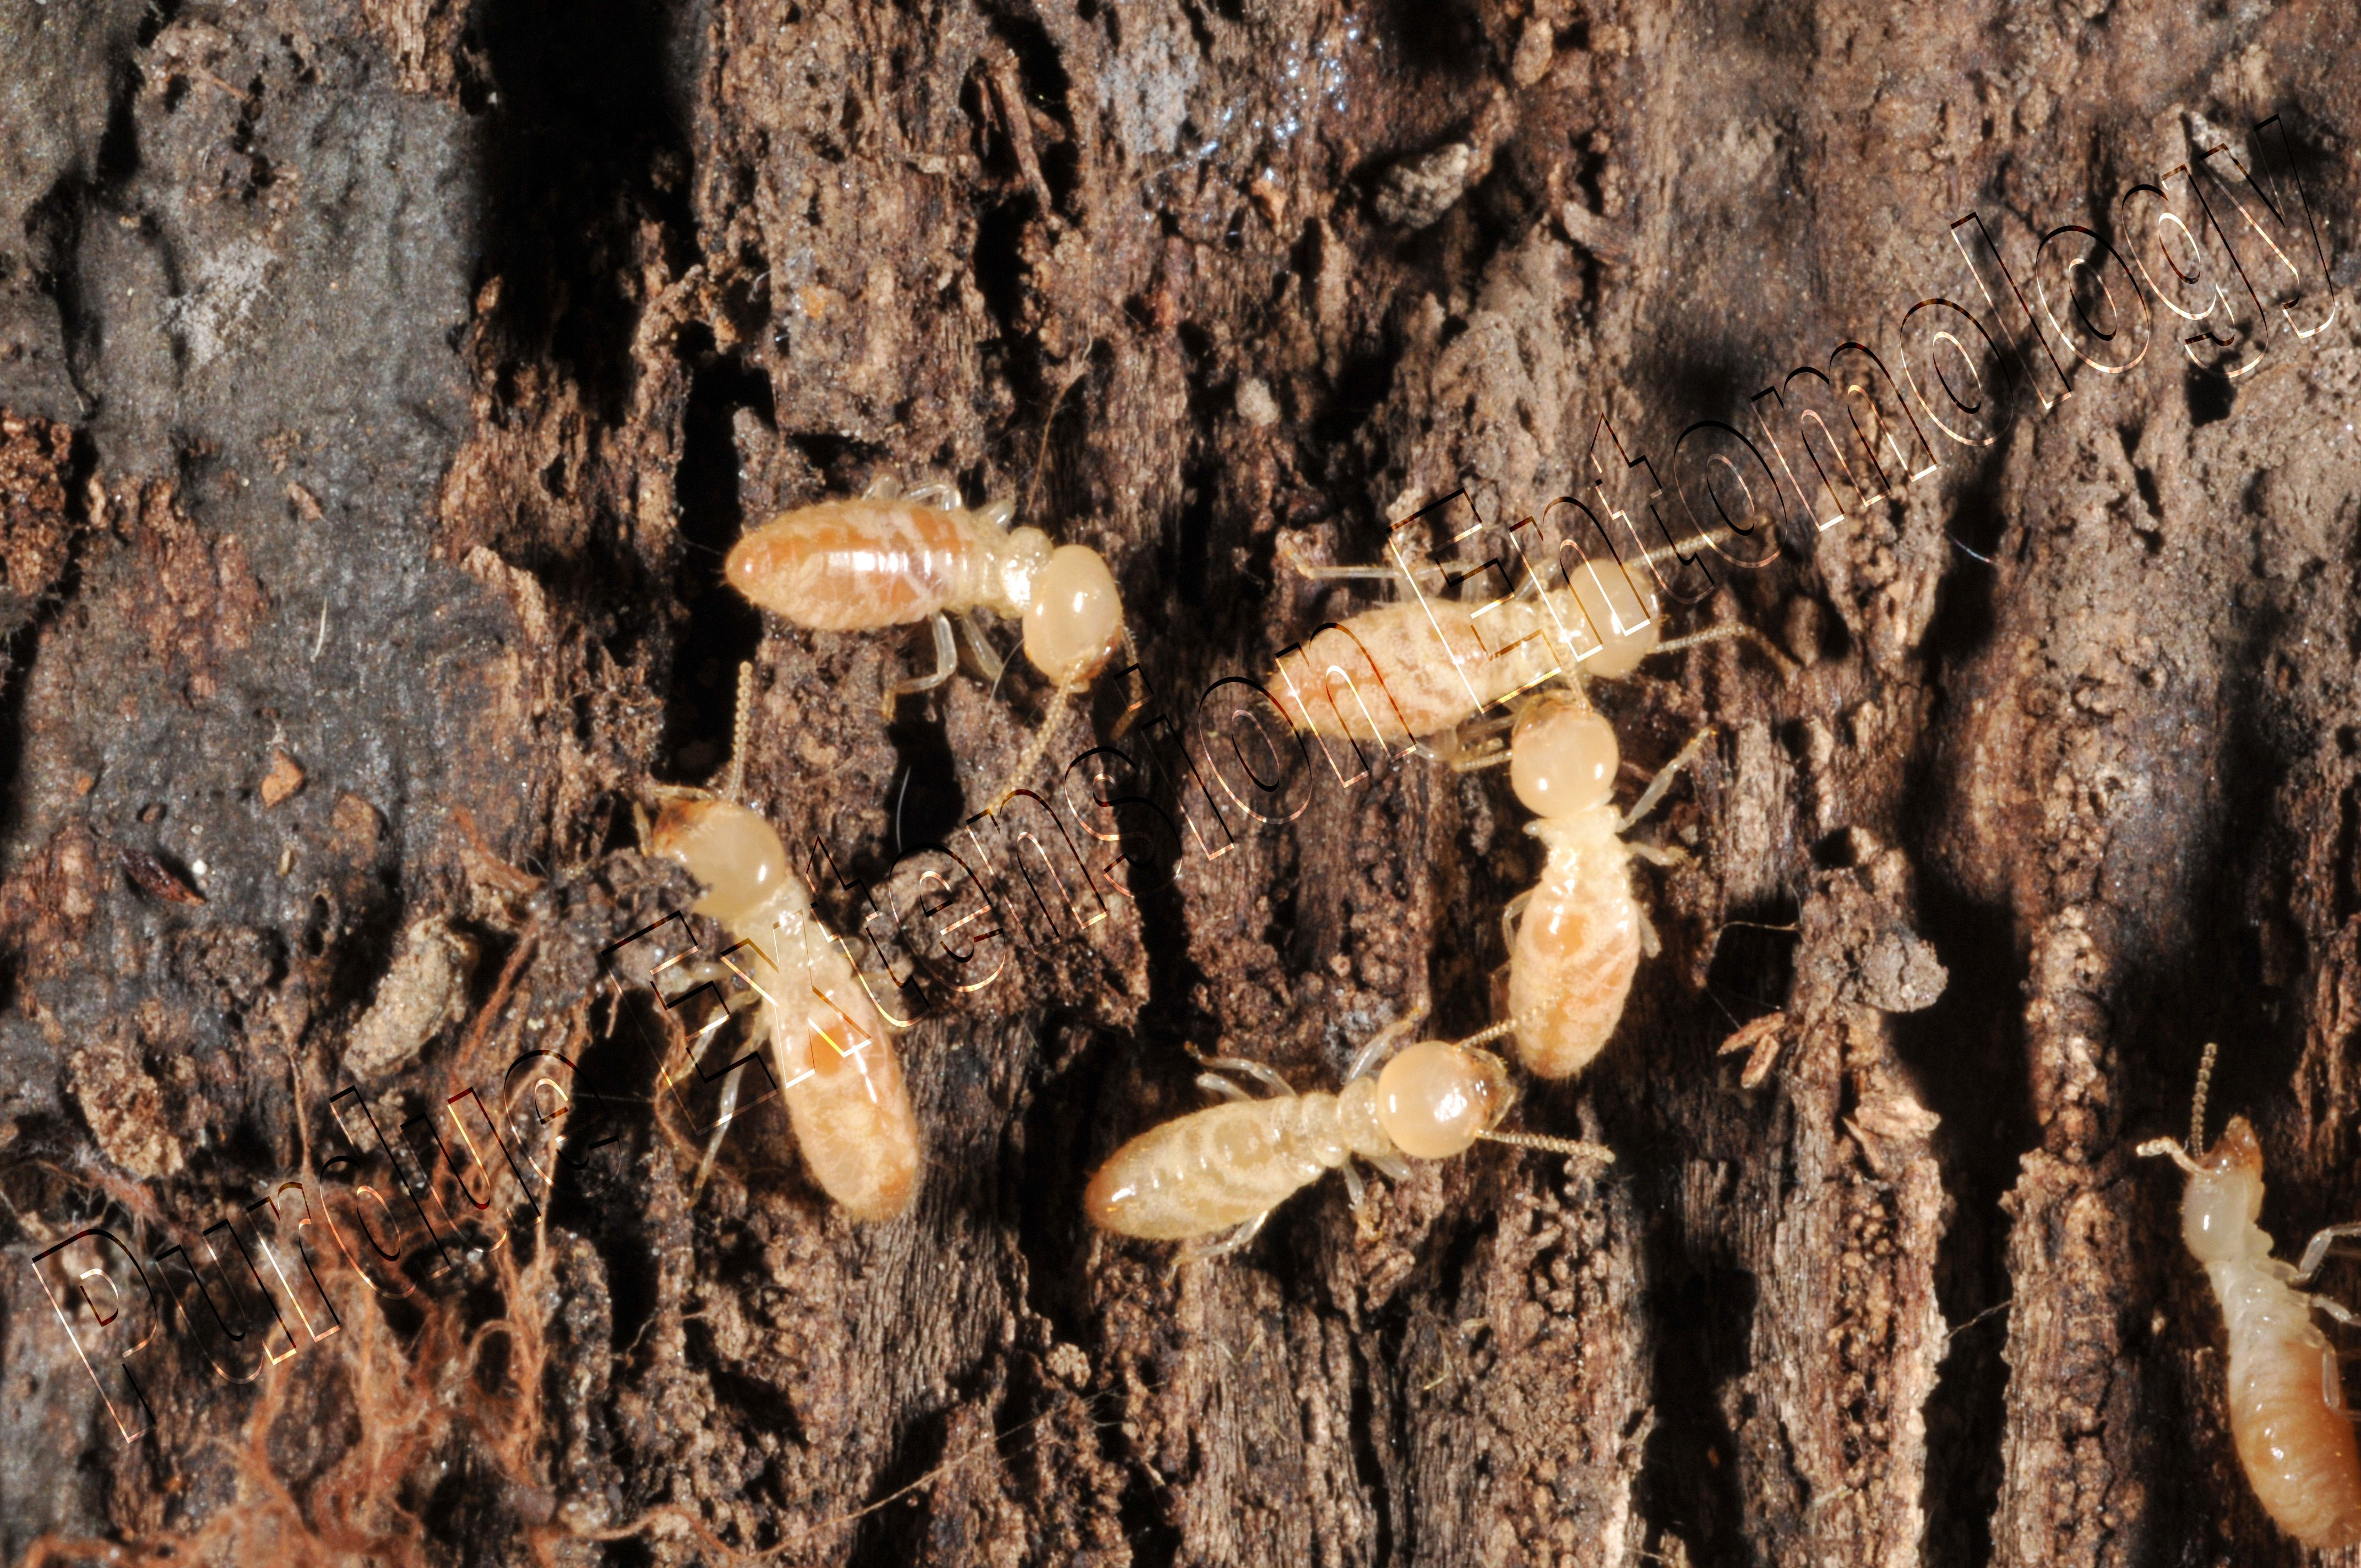 dry wood termites are another species whose colony lives in wood